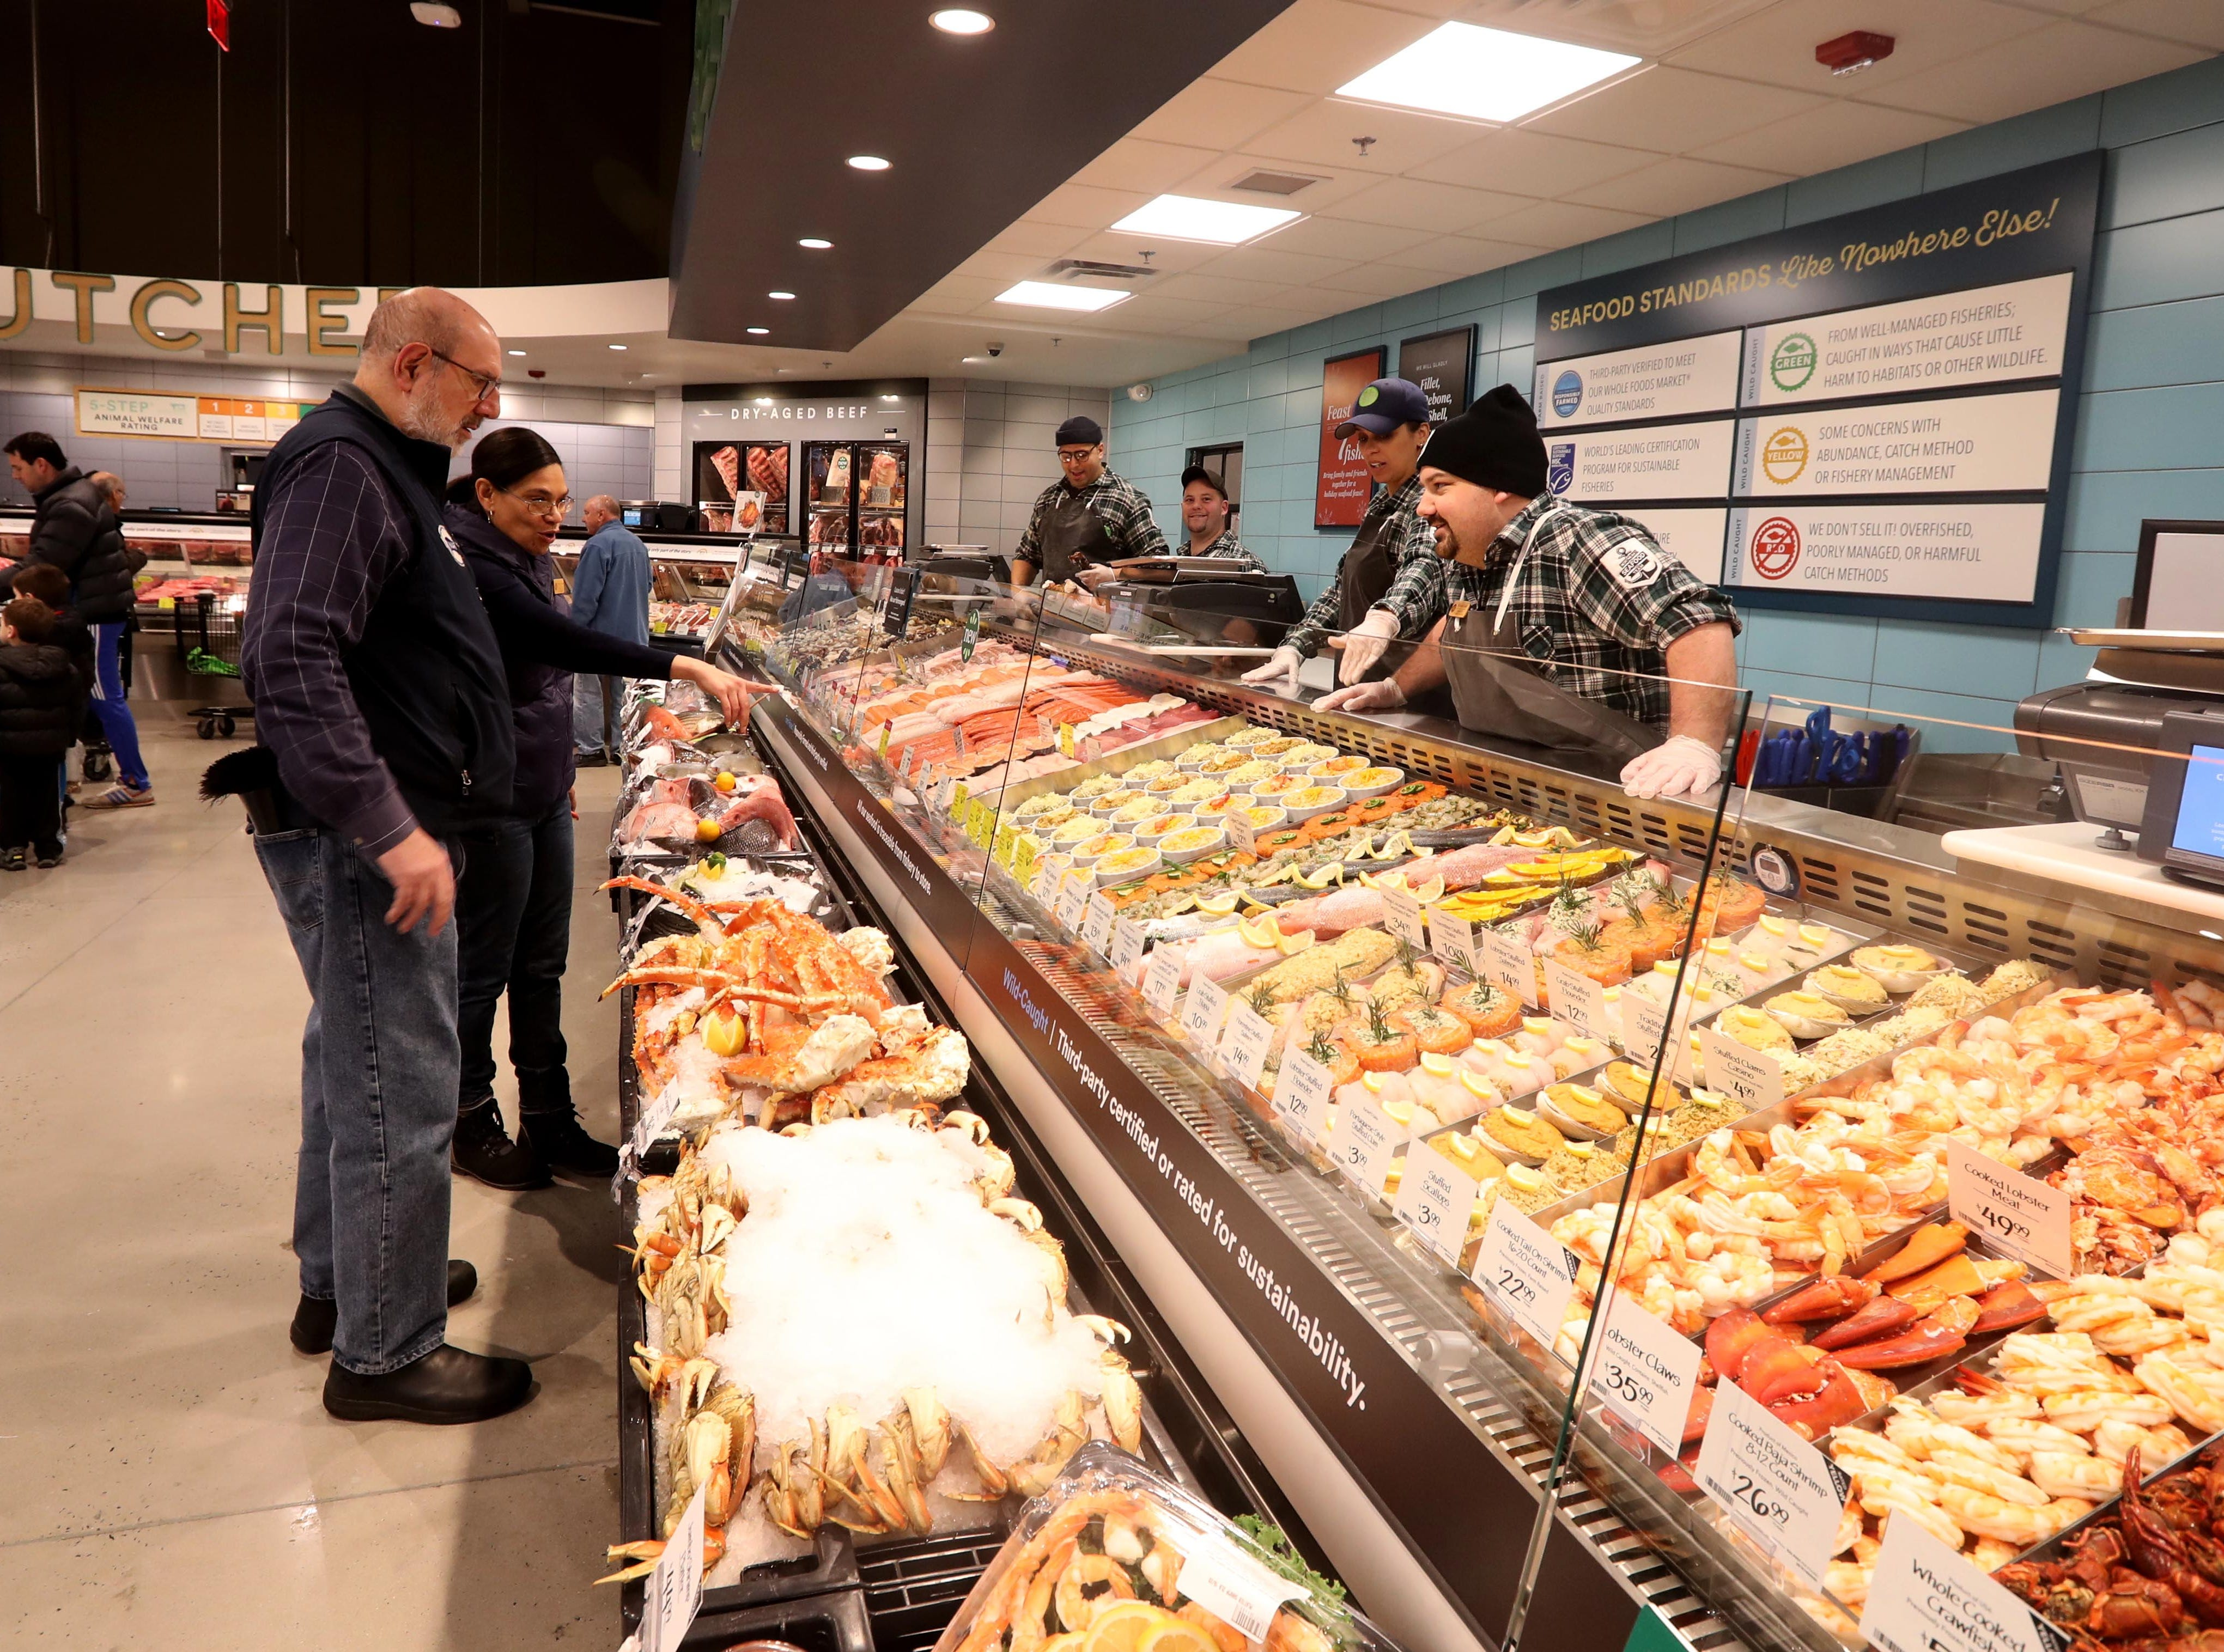 Shoppers browse the seafood section at the new Whole Foods in Chappaqua Dec. 15, 2018. The 40,000 square foot store opened to shoppers on the site of the formers Readers Digest headquarters. The New Castle Town Board and Planning Board approved a temporary traffic plan for the Route 117-Roaring Brook Road intersection that allowed the store to open.